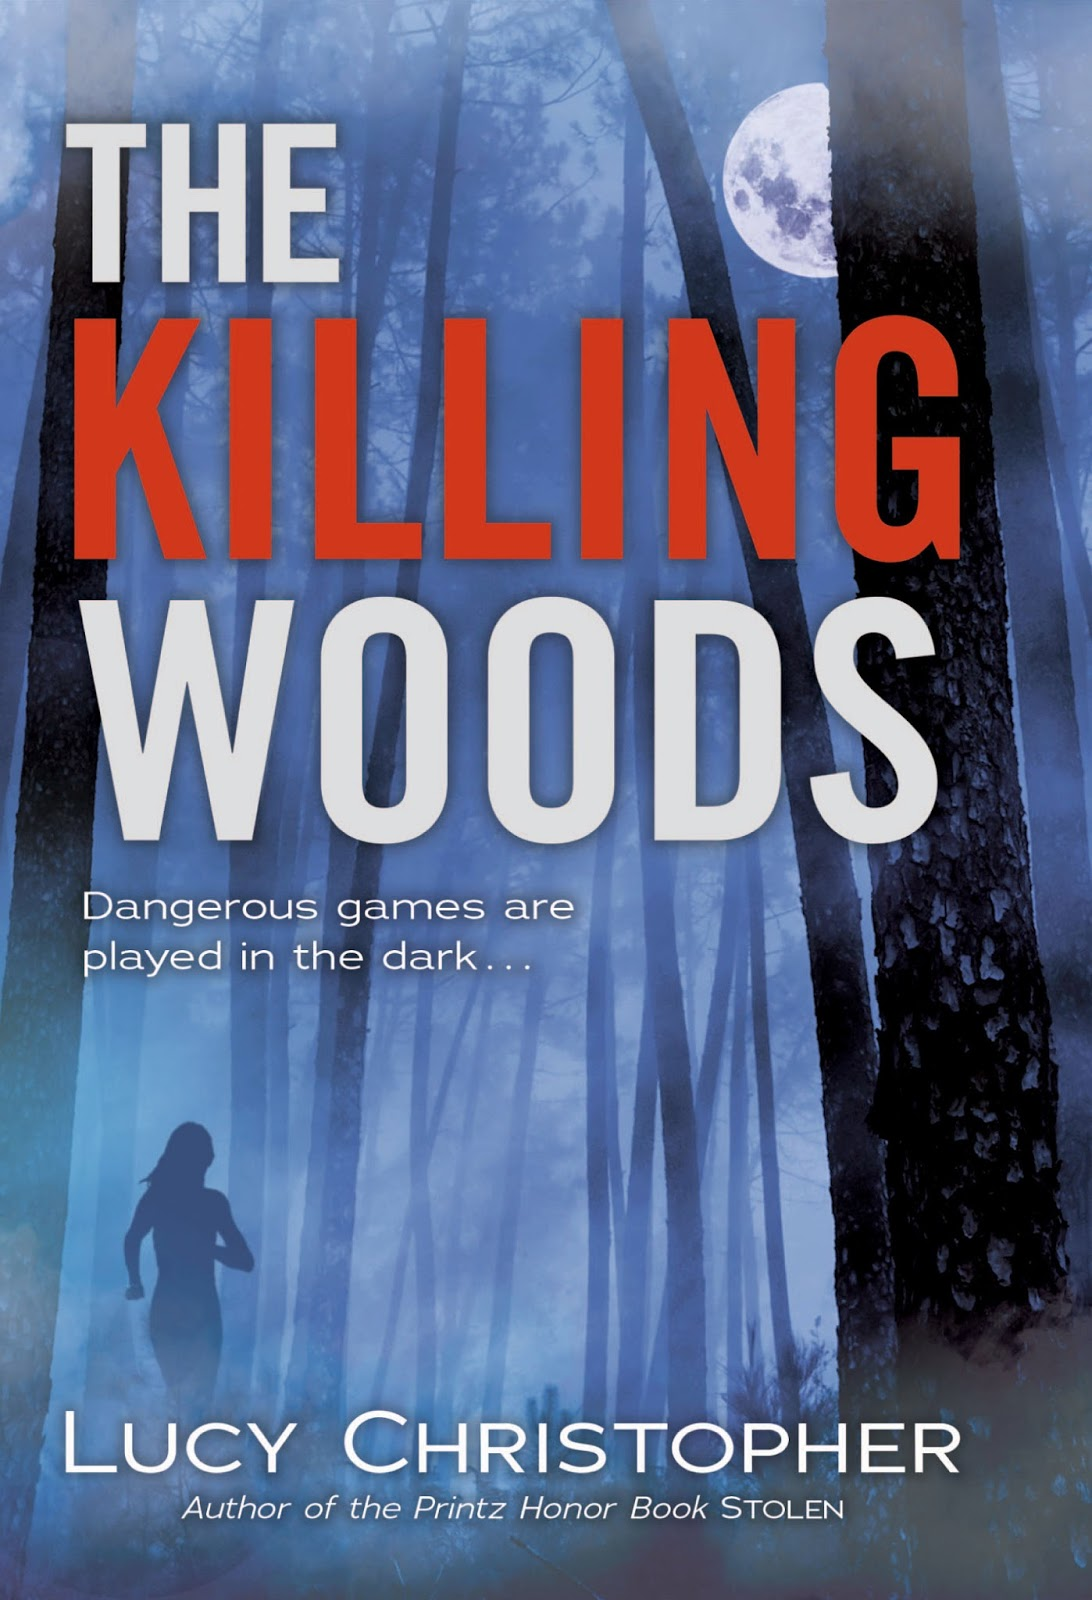 Librisnotes The Killing Woods By Lucy Christopher